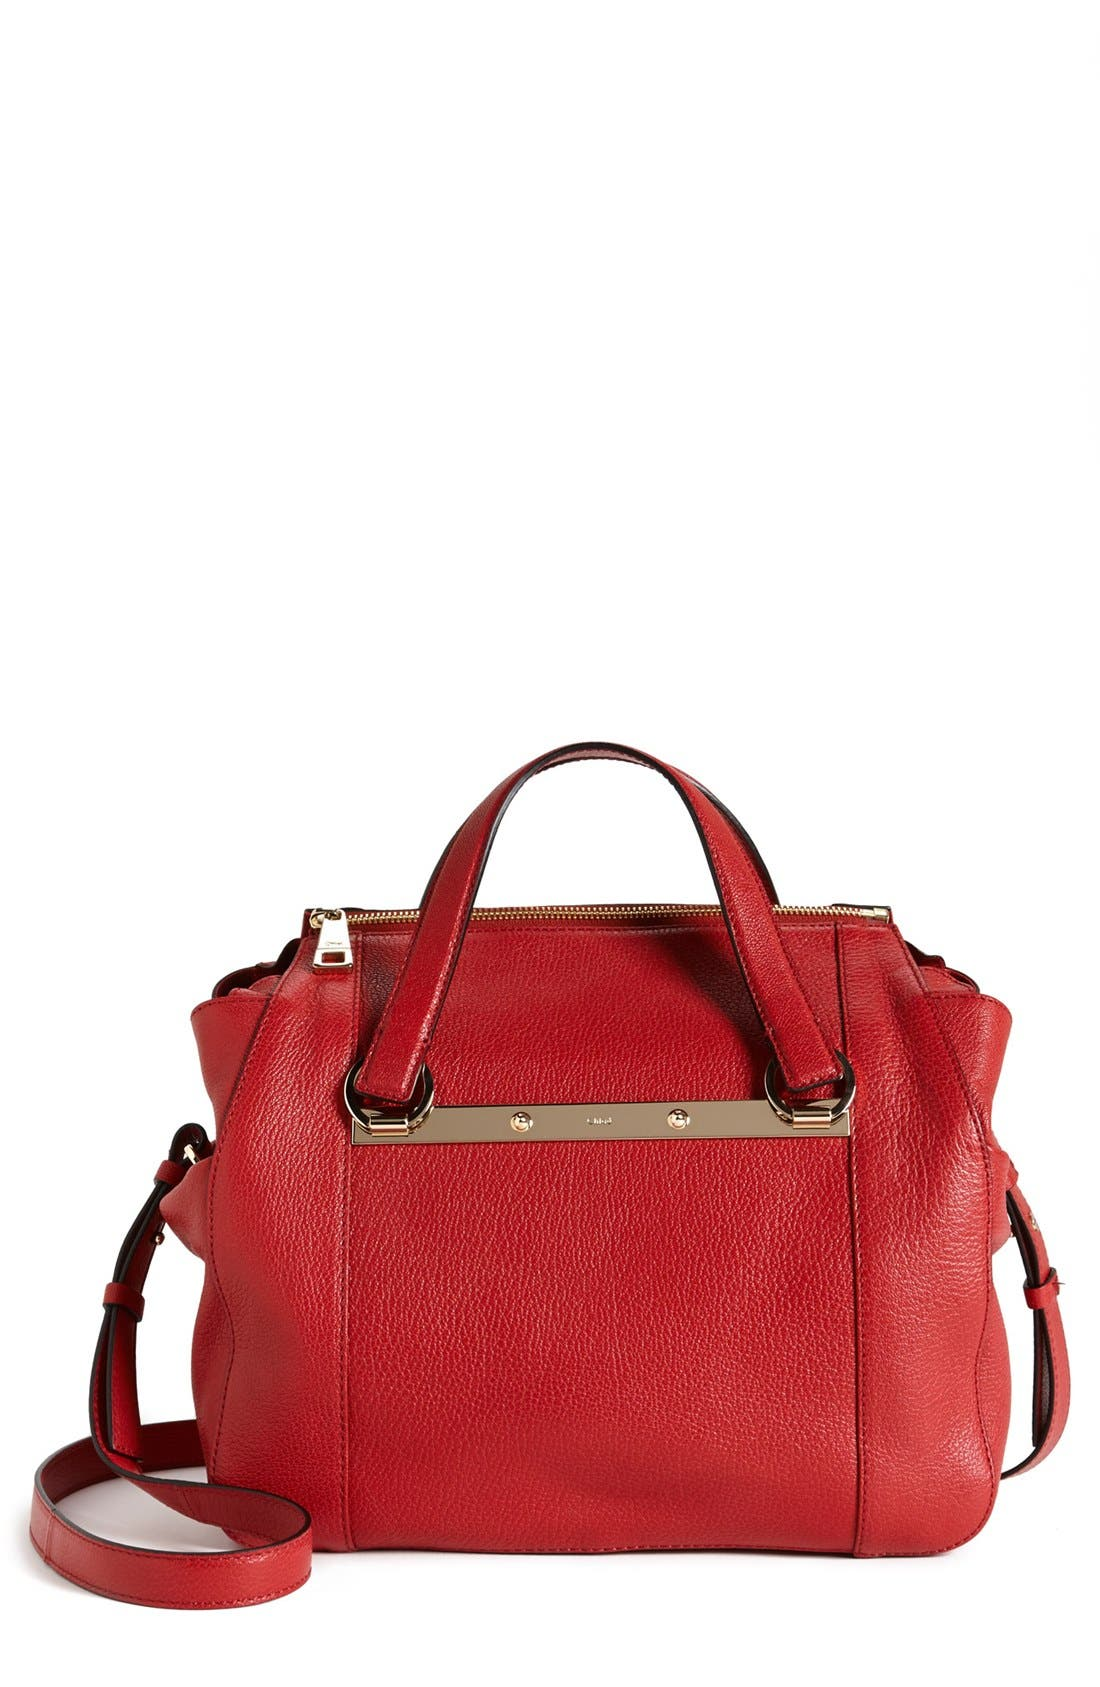 Main Image - Chloé 'Bridget - Small' Shoulder Bag